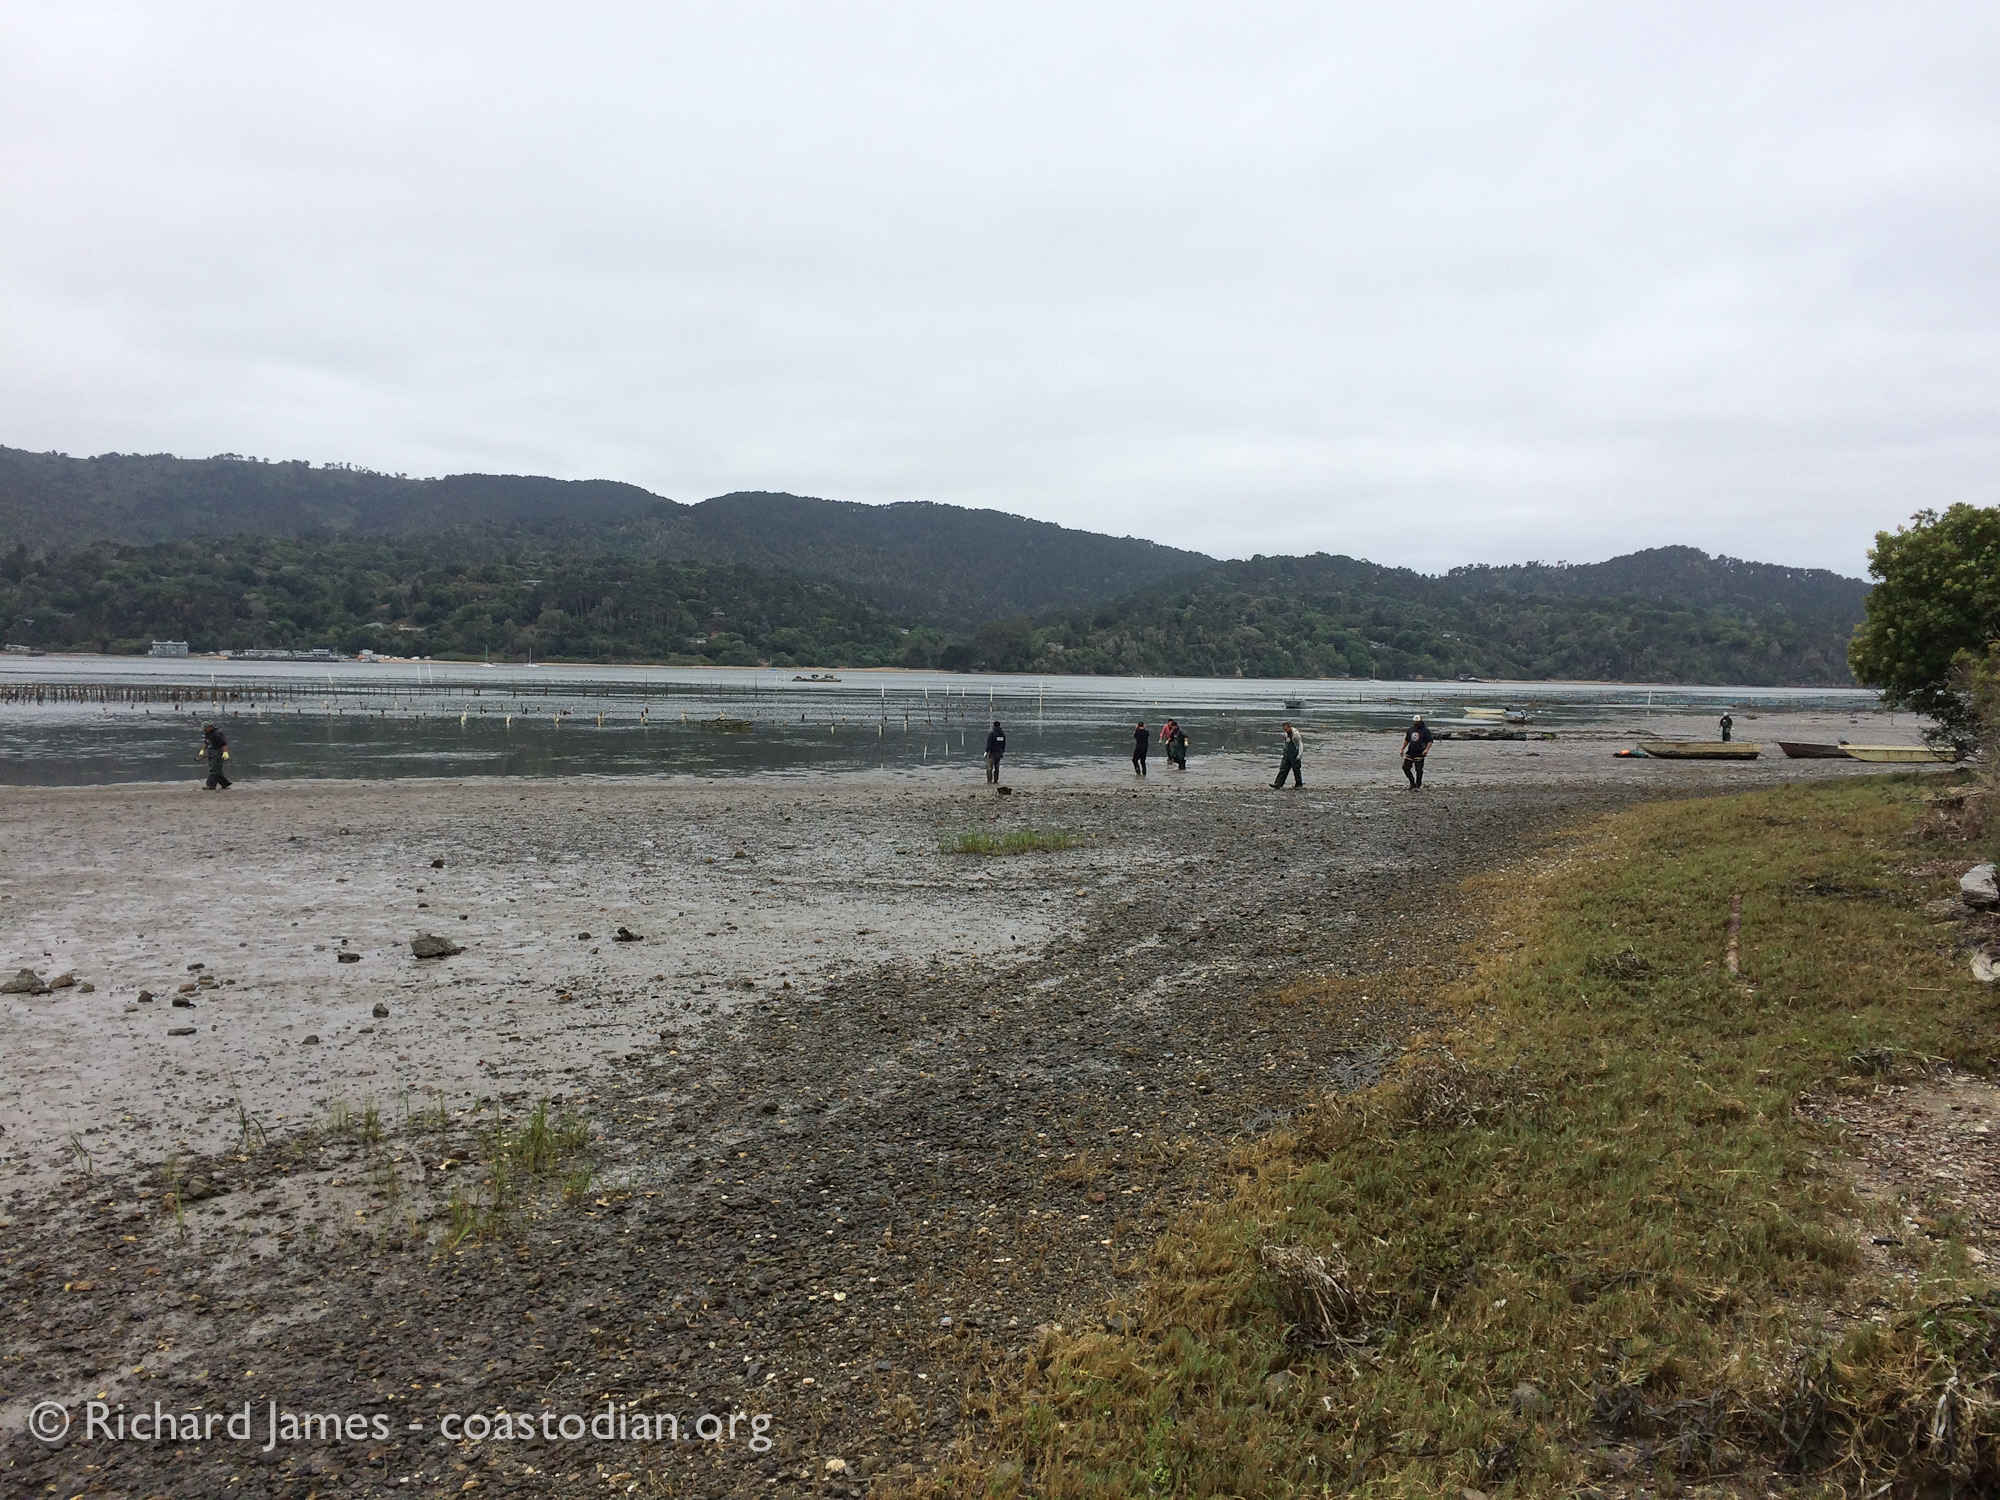 Tomales Bay Oyster Company owner and staff picking up their trash. What a great idea!